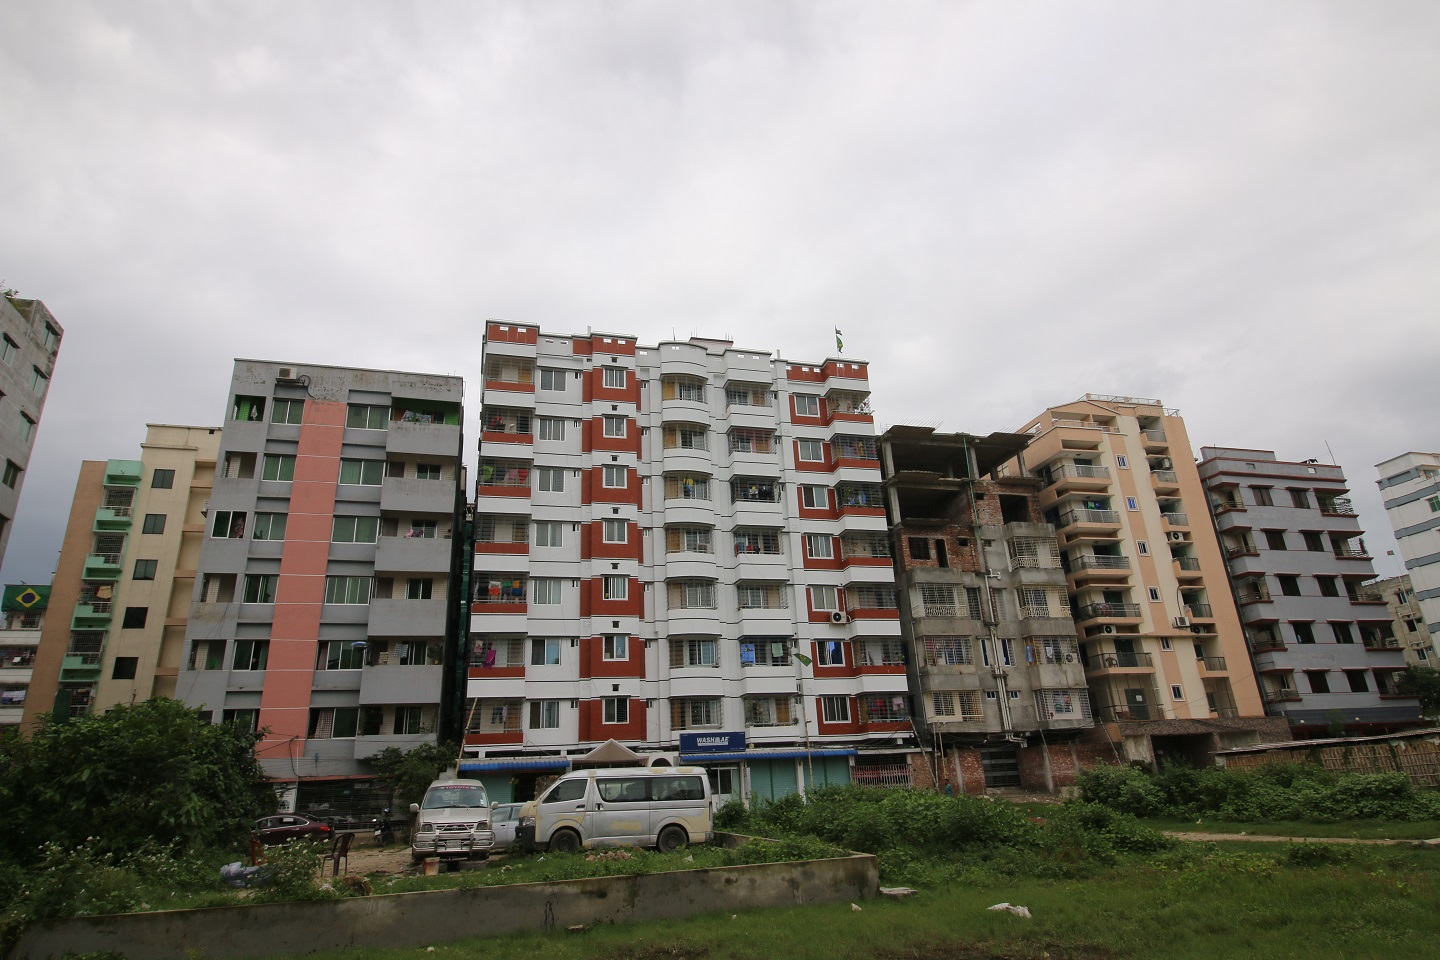 Banasree is one of the most affordable residential areas for newlyweds in Dhaka.